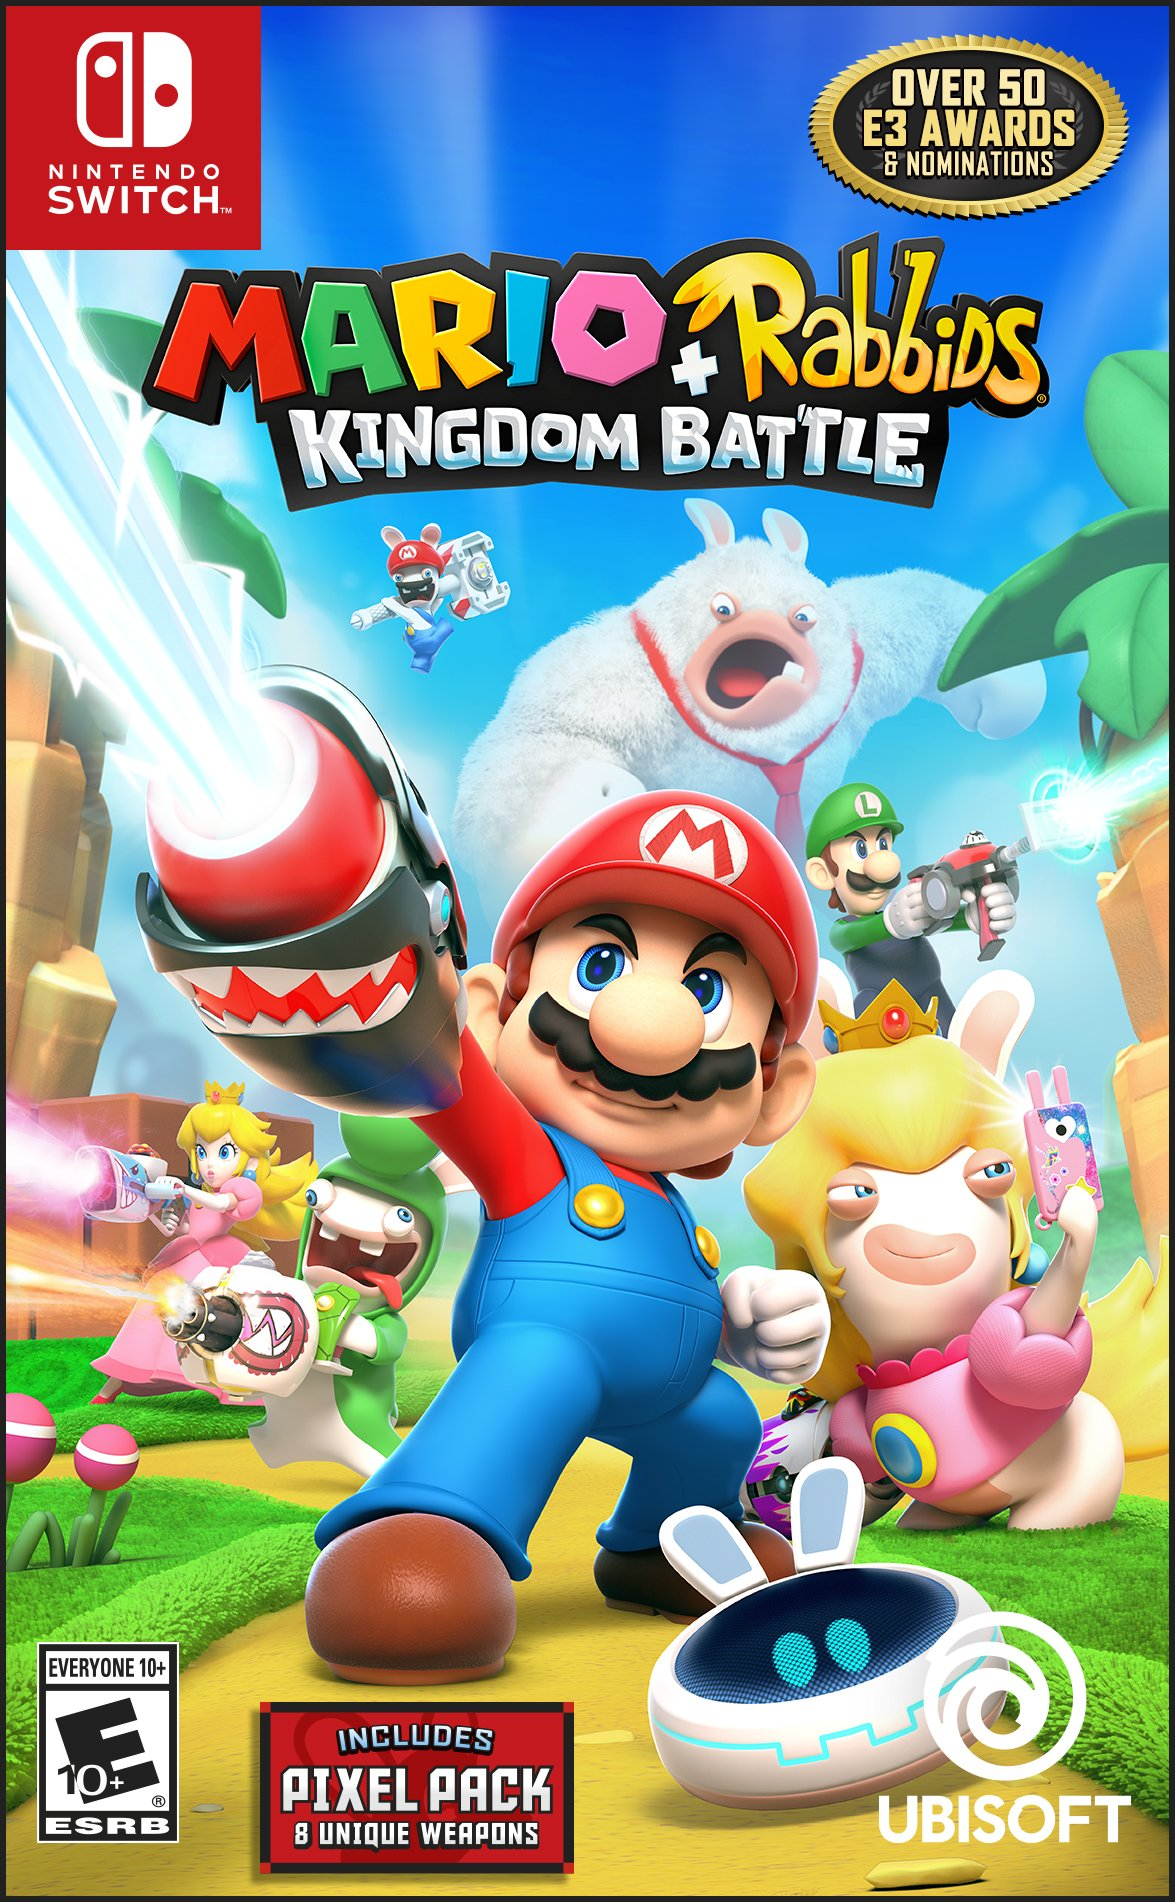 Kingdom Battle Mario Rabbids